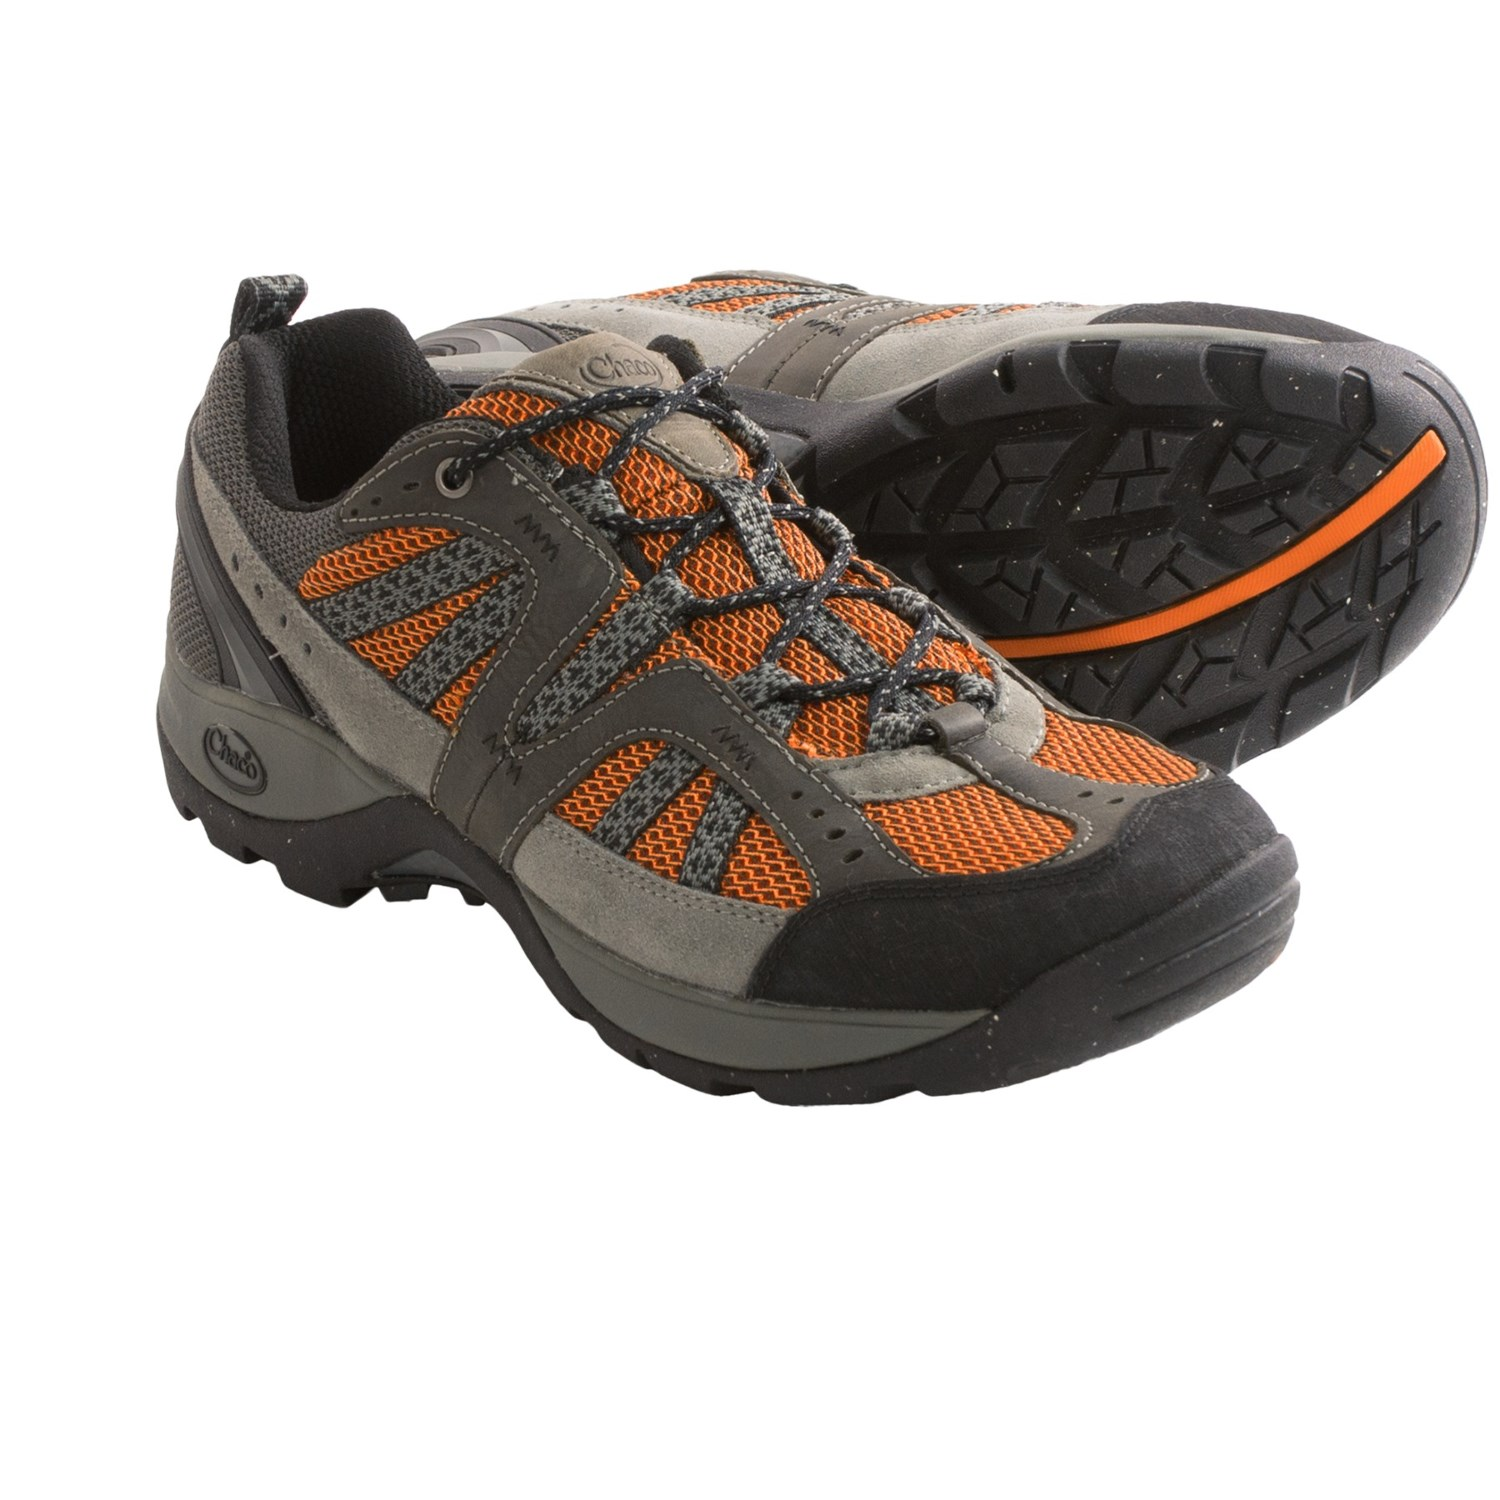 Chaco Grayson Hiking Shoes Men